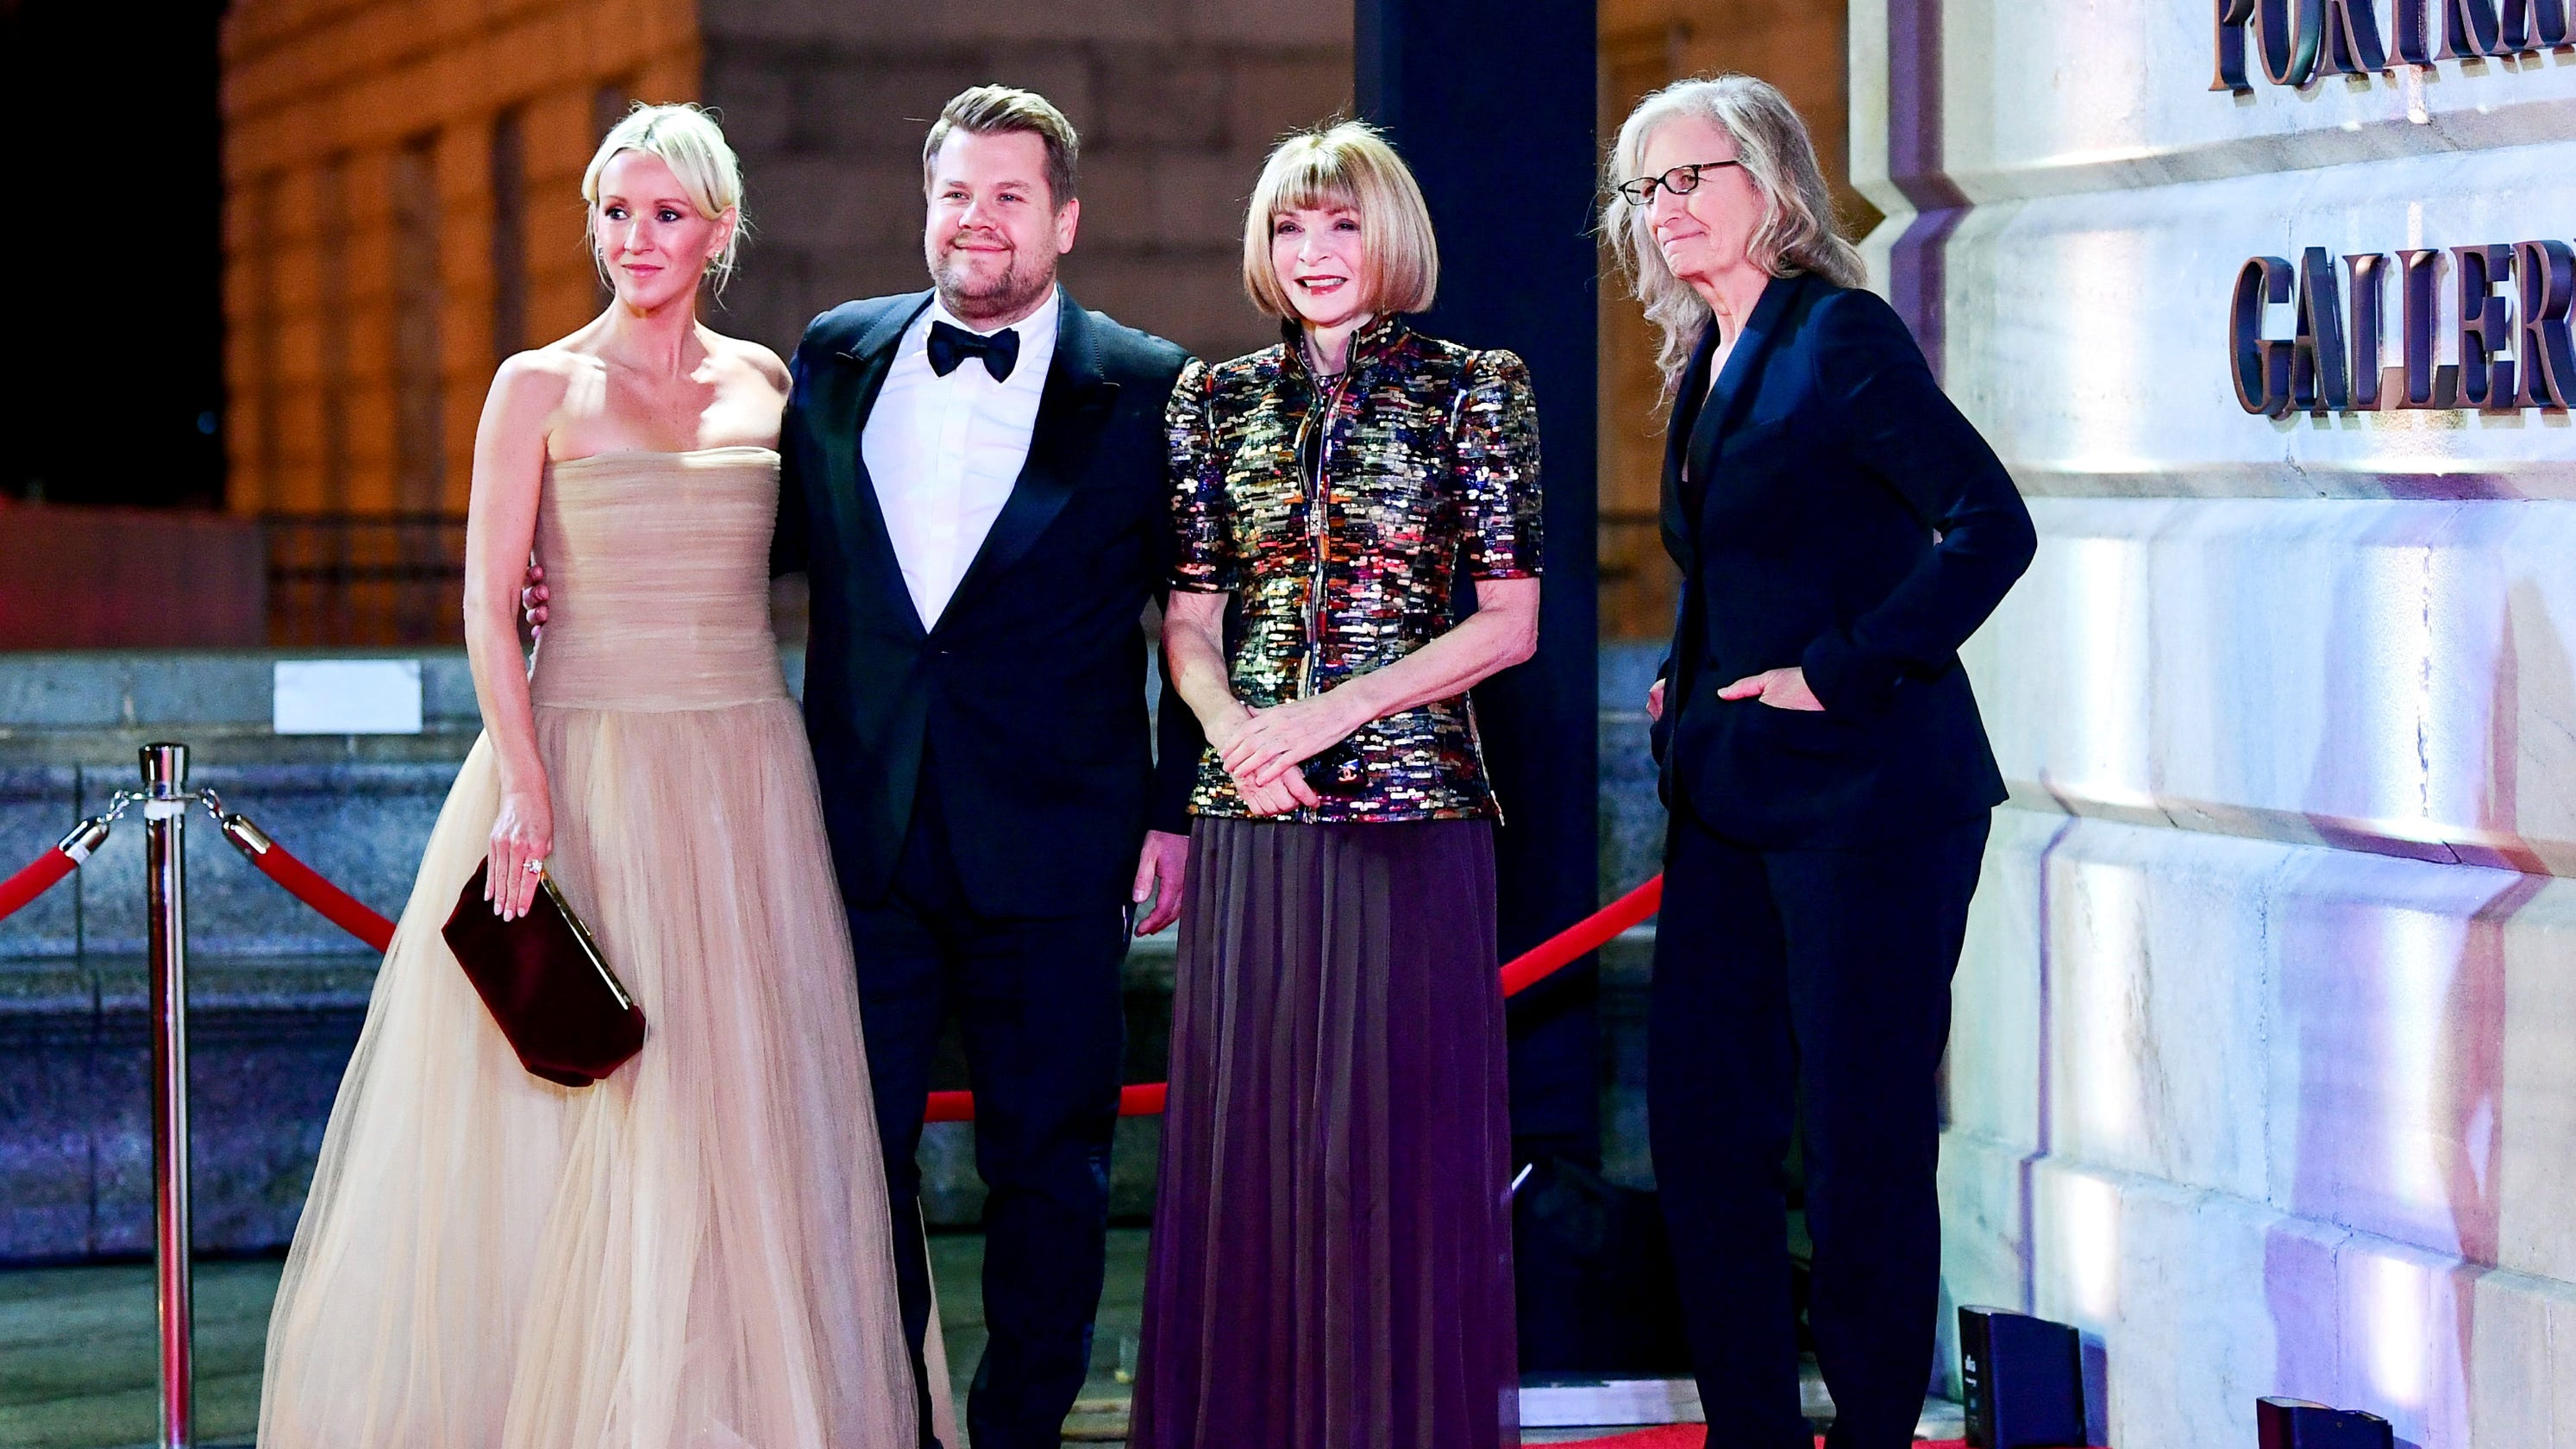 James Corden impersonates Anna Wintour – bob and all; Gayle King dons 'so many Spanx' at gala